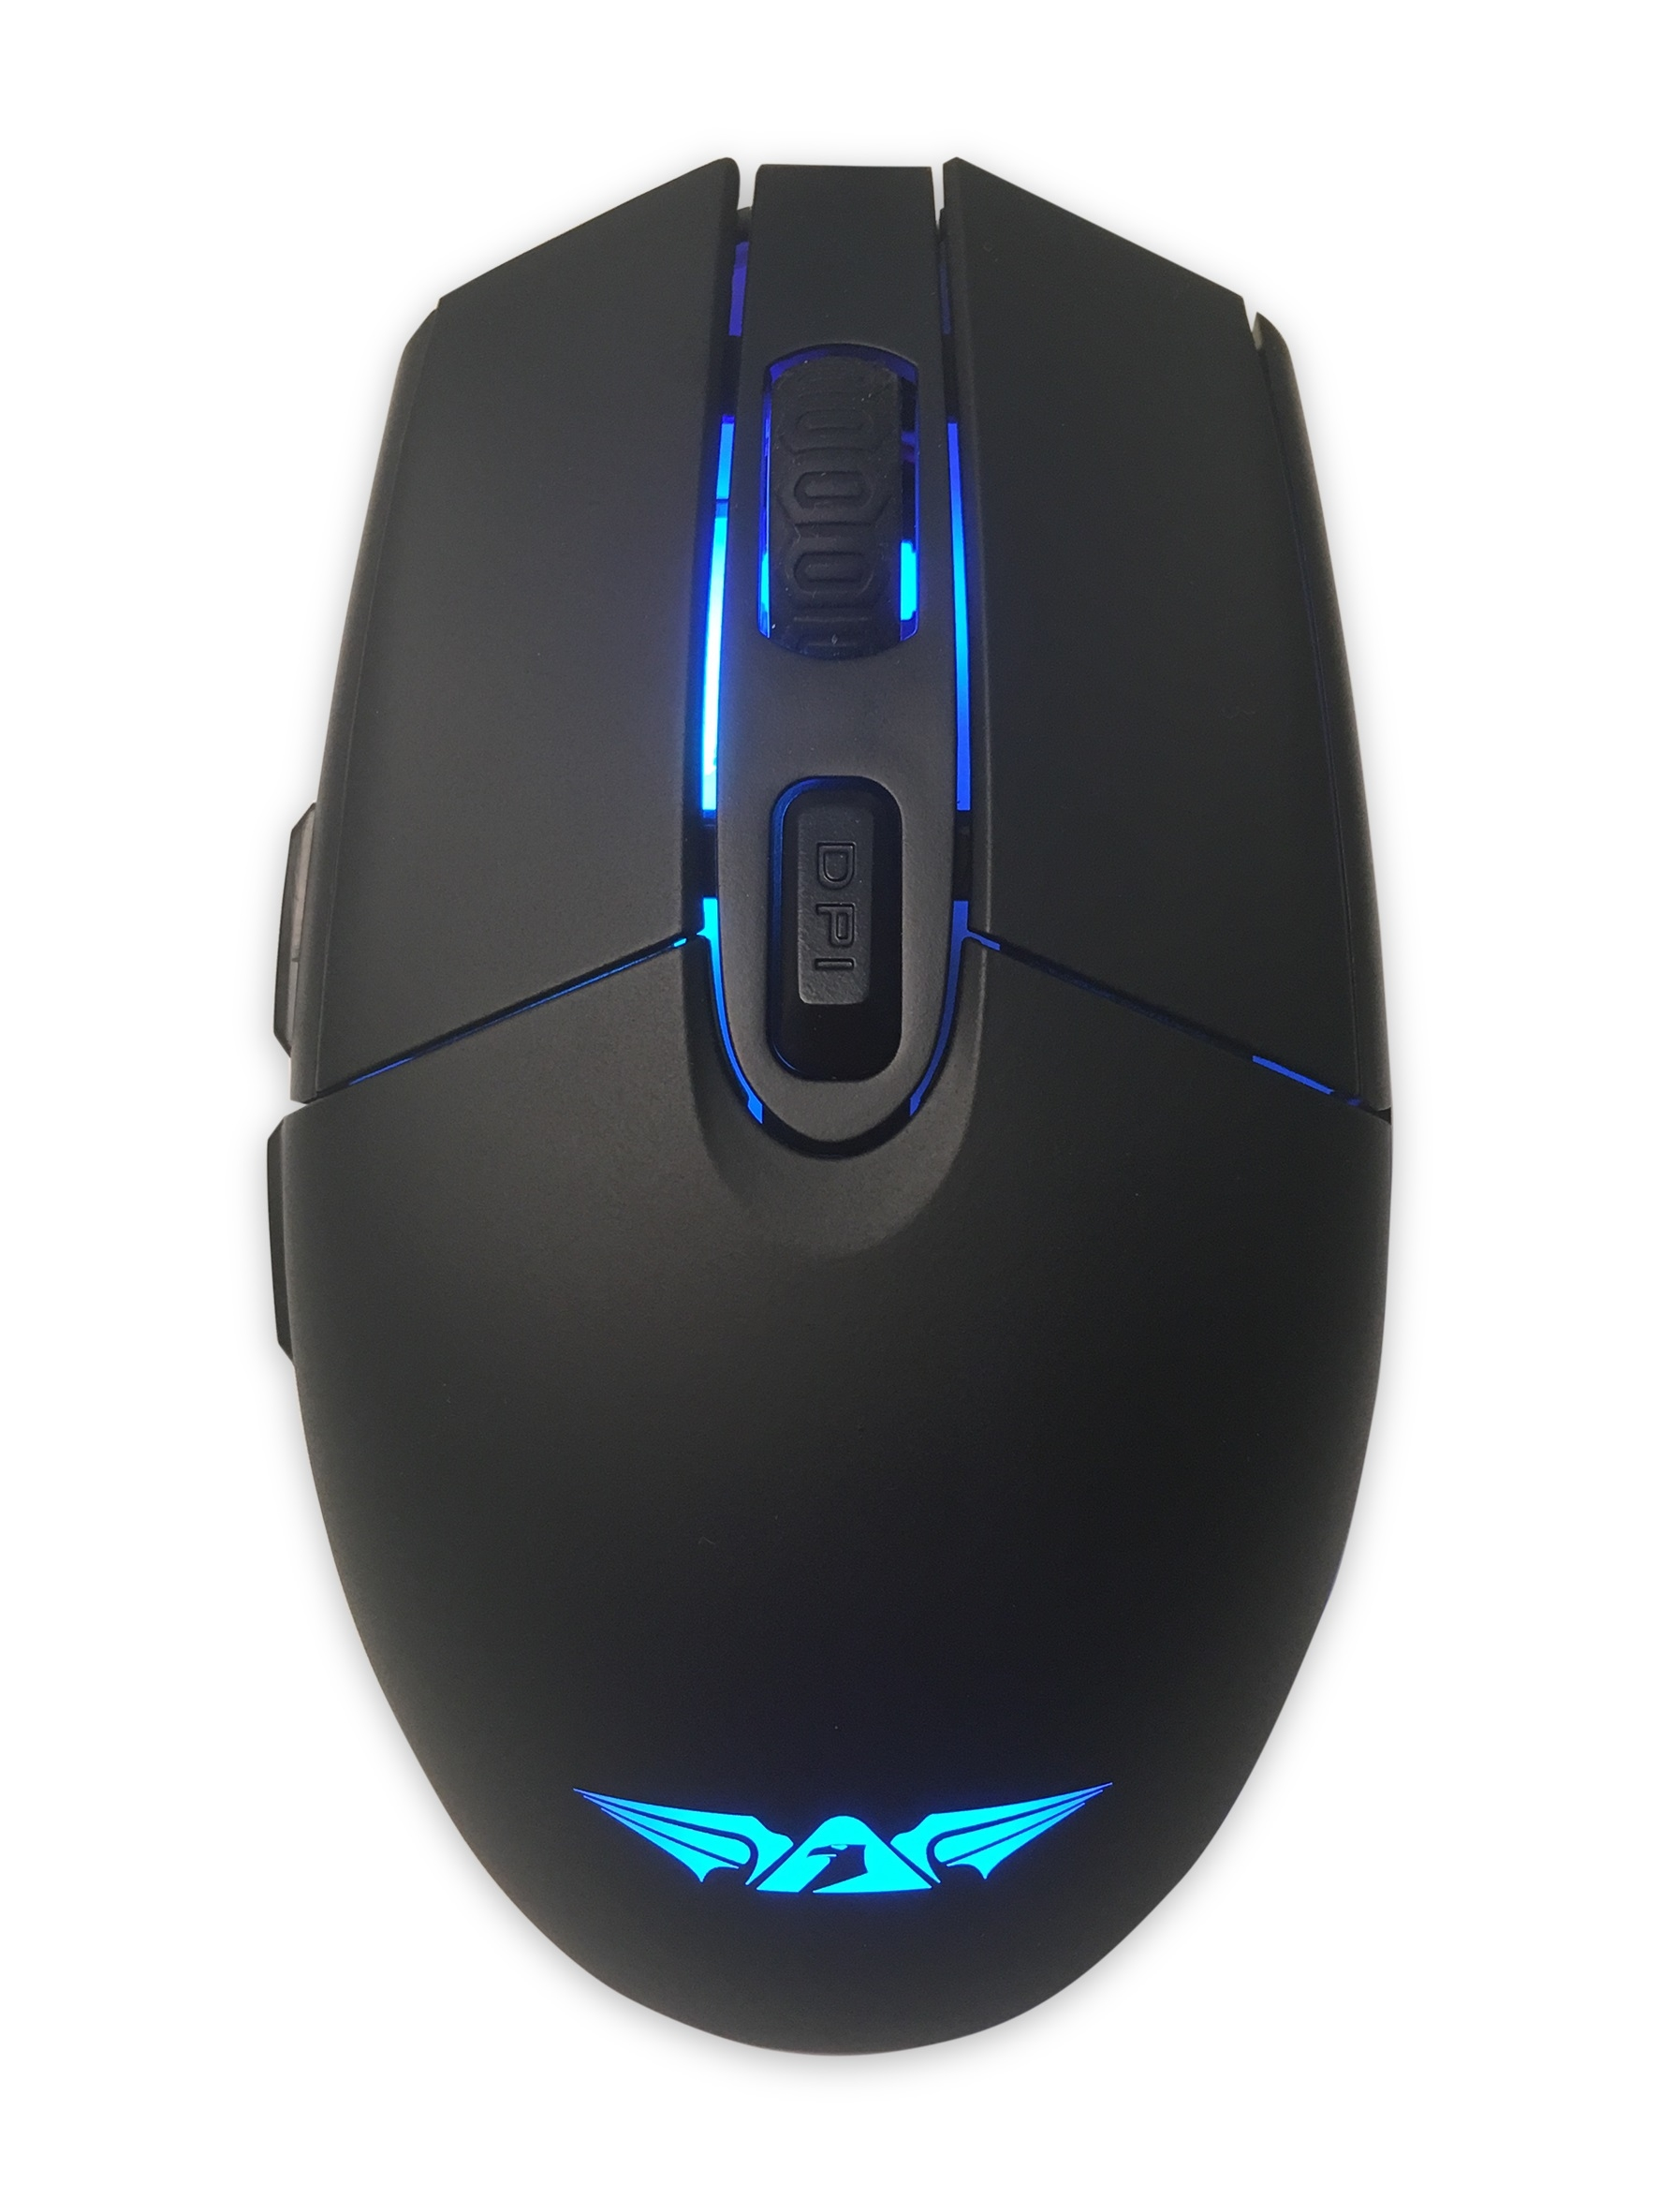 Armaggeddon Raven 3 Pro-Gaming Mouse